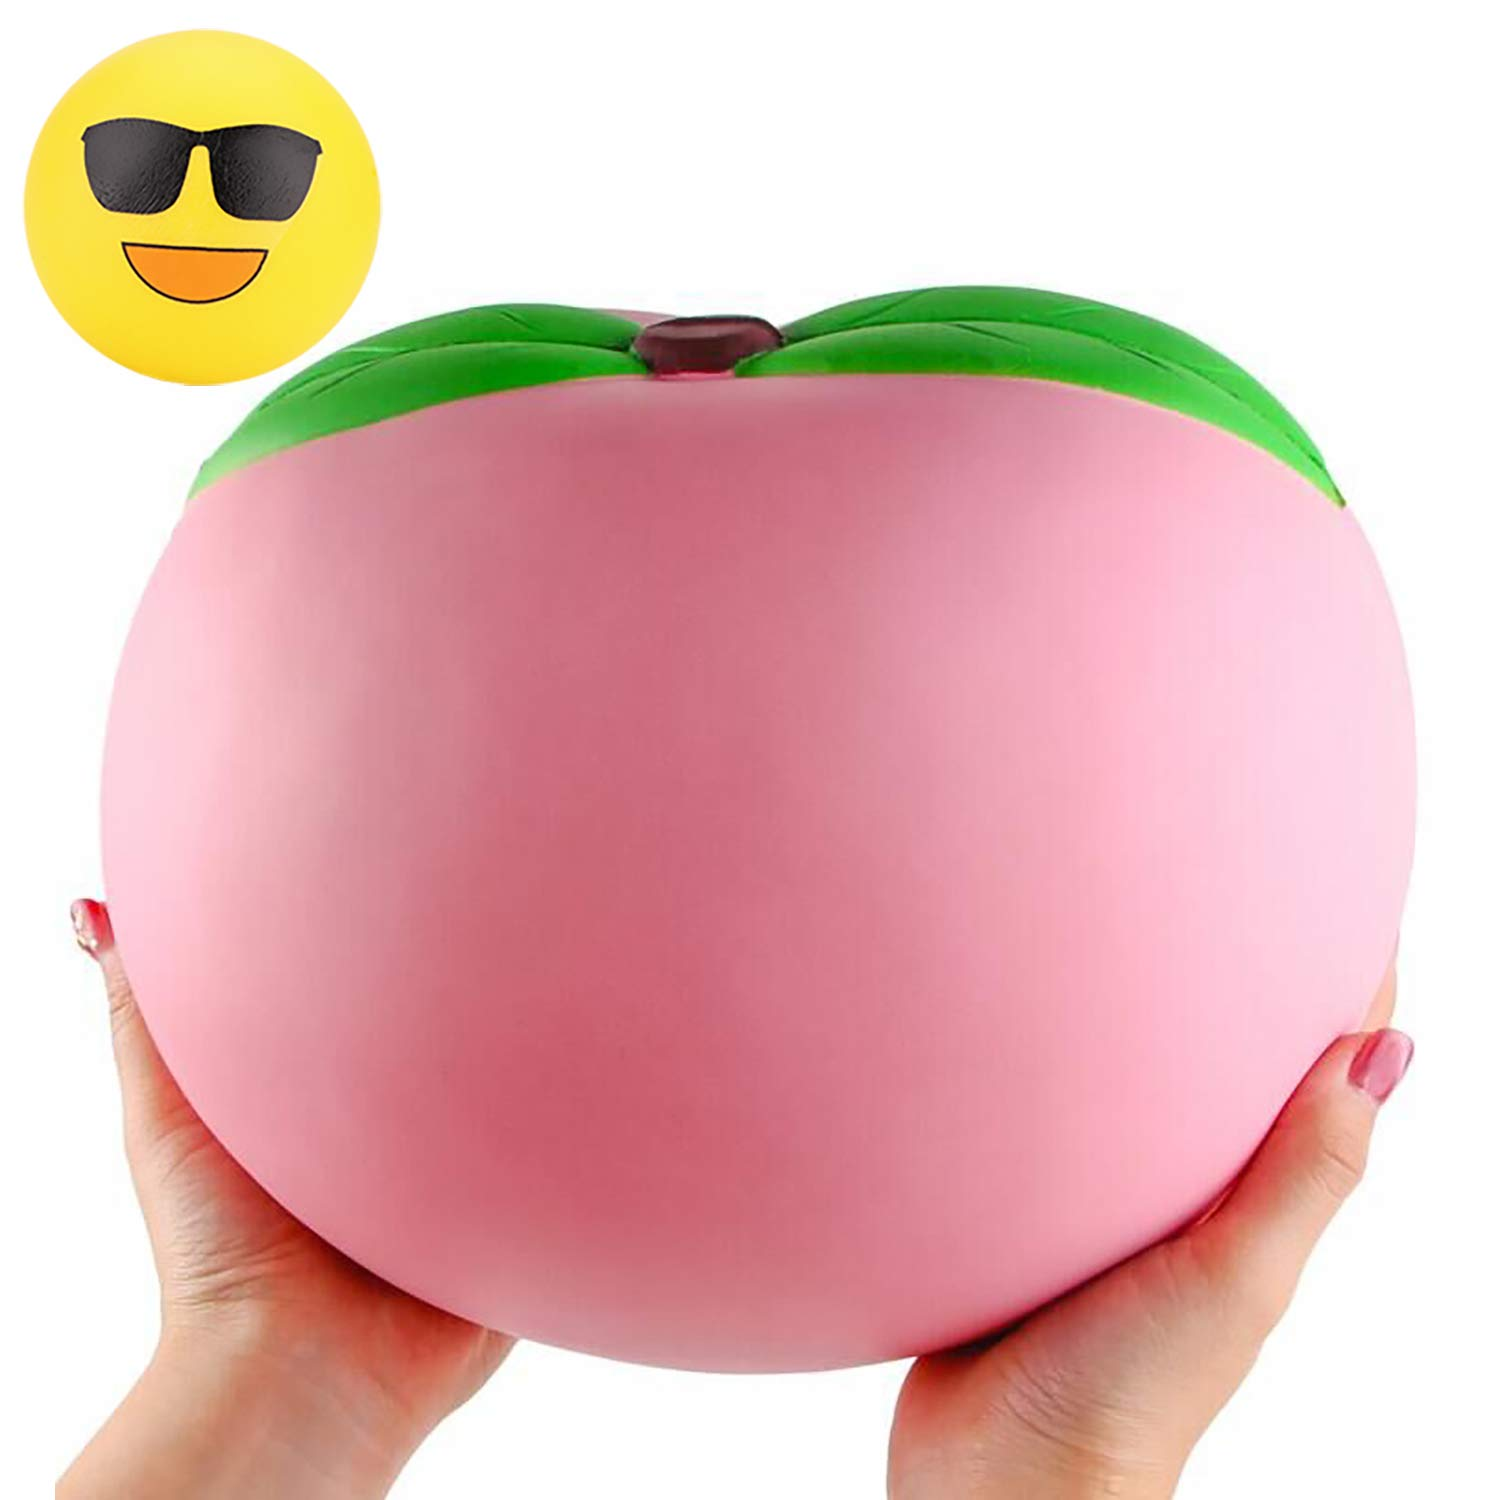 6417e4219d ... Squishy Peach Fruit Peach Cream Scented Kawaii Peach Toy Random  Emotional Toy Funny Network Emotion Toy Stress Relief Toy Decoration Kids  Toy Adults